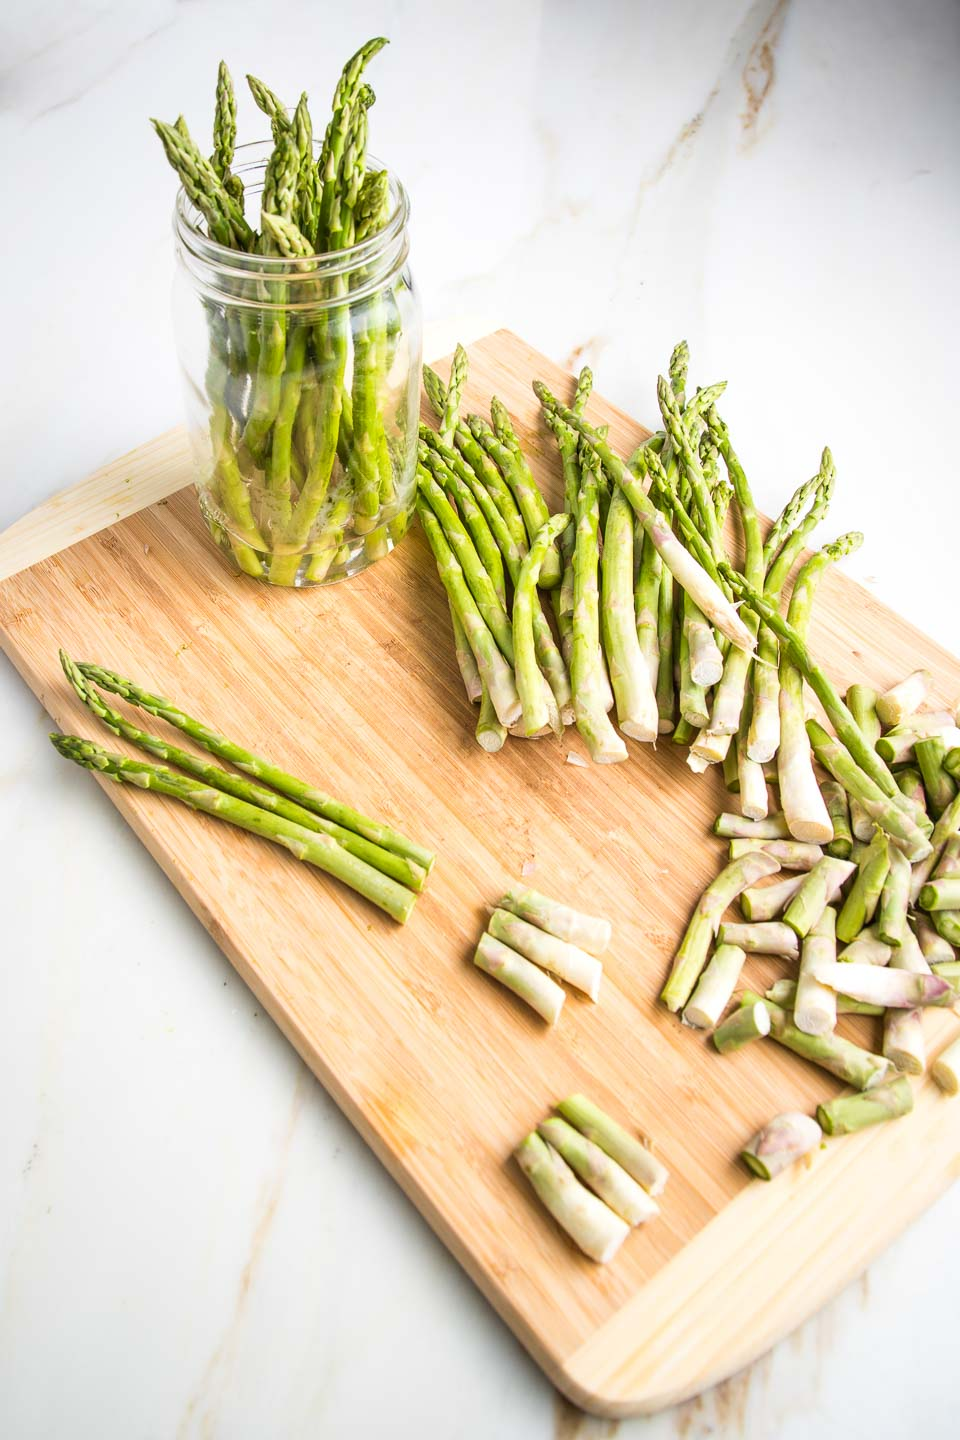 Cutting board with a bunch of asparagus, showing to trim the bottom off. A glass mason jar with already trimmed asparagus standing upright in an inch of water.